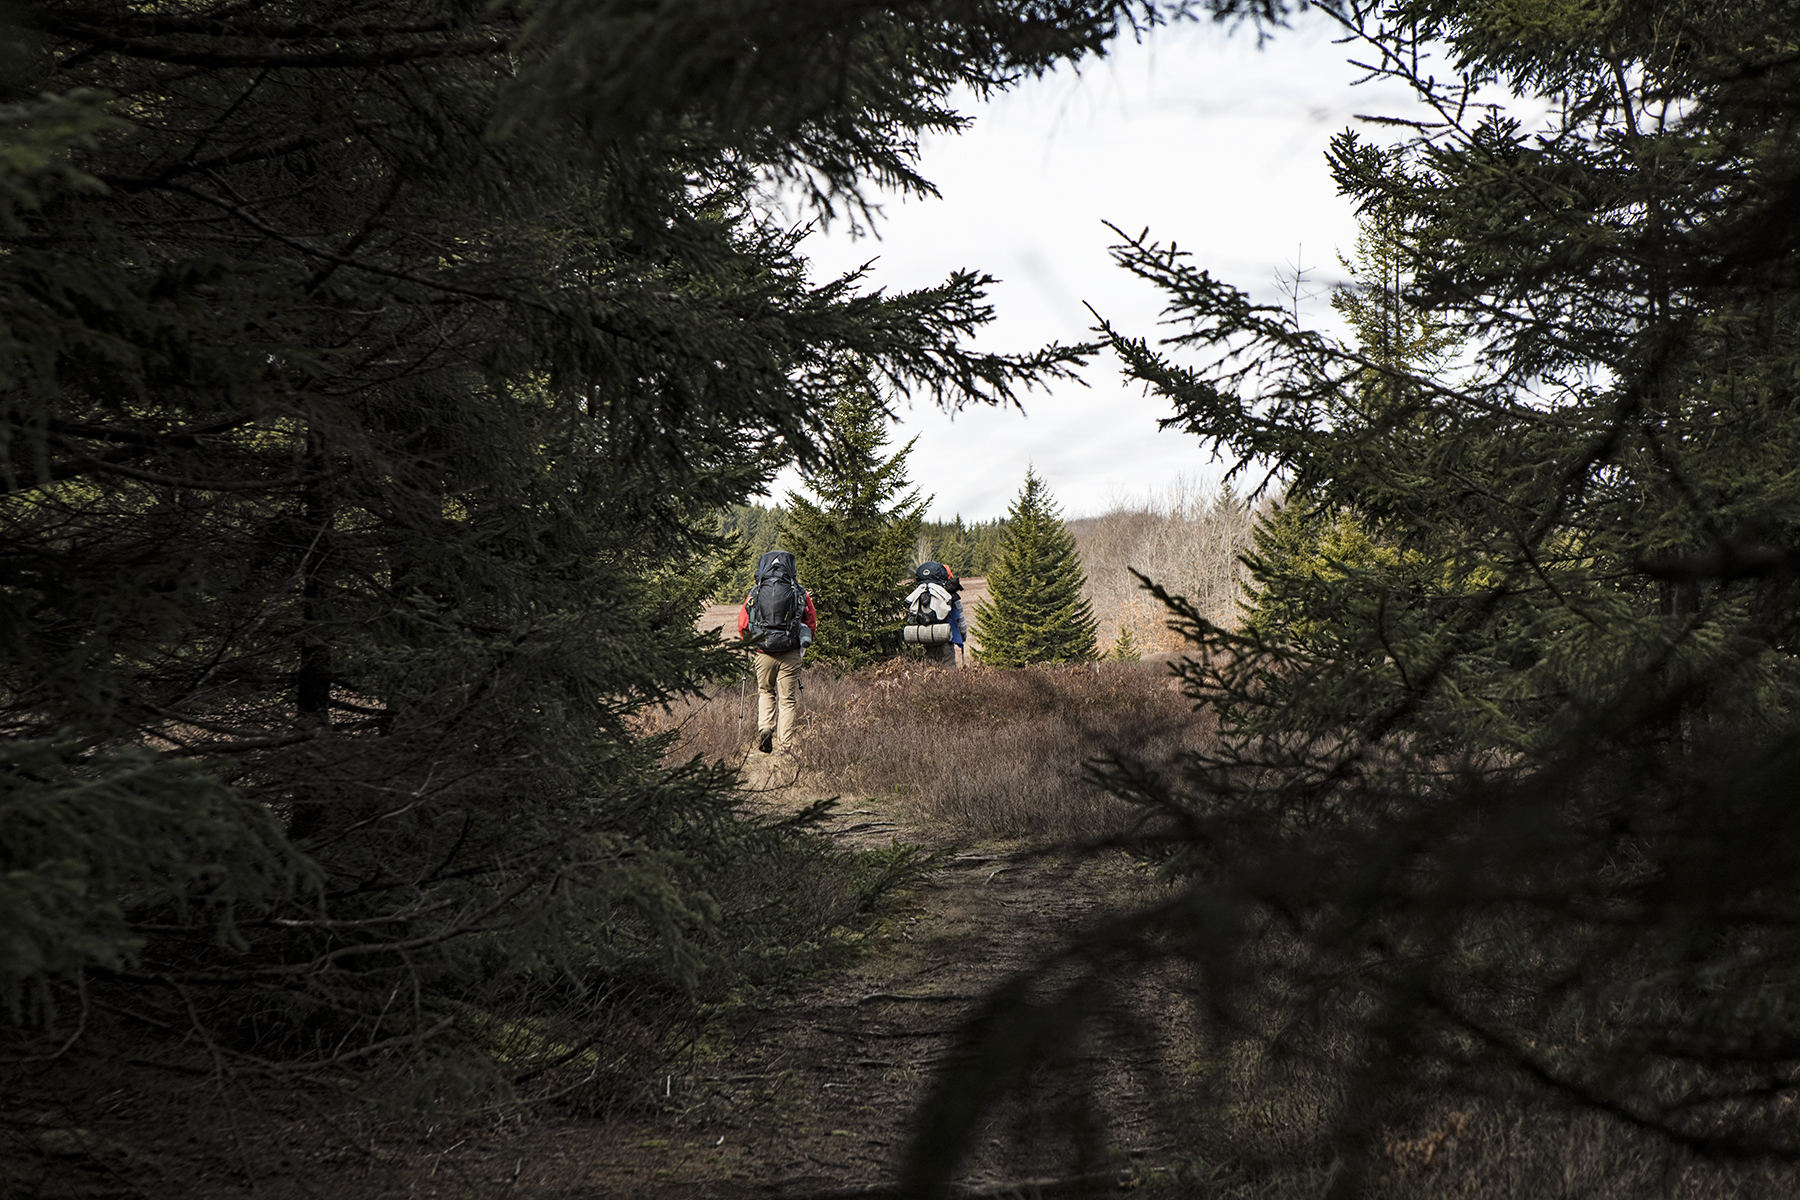 Loren and Nate escaping the shade of the pines.